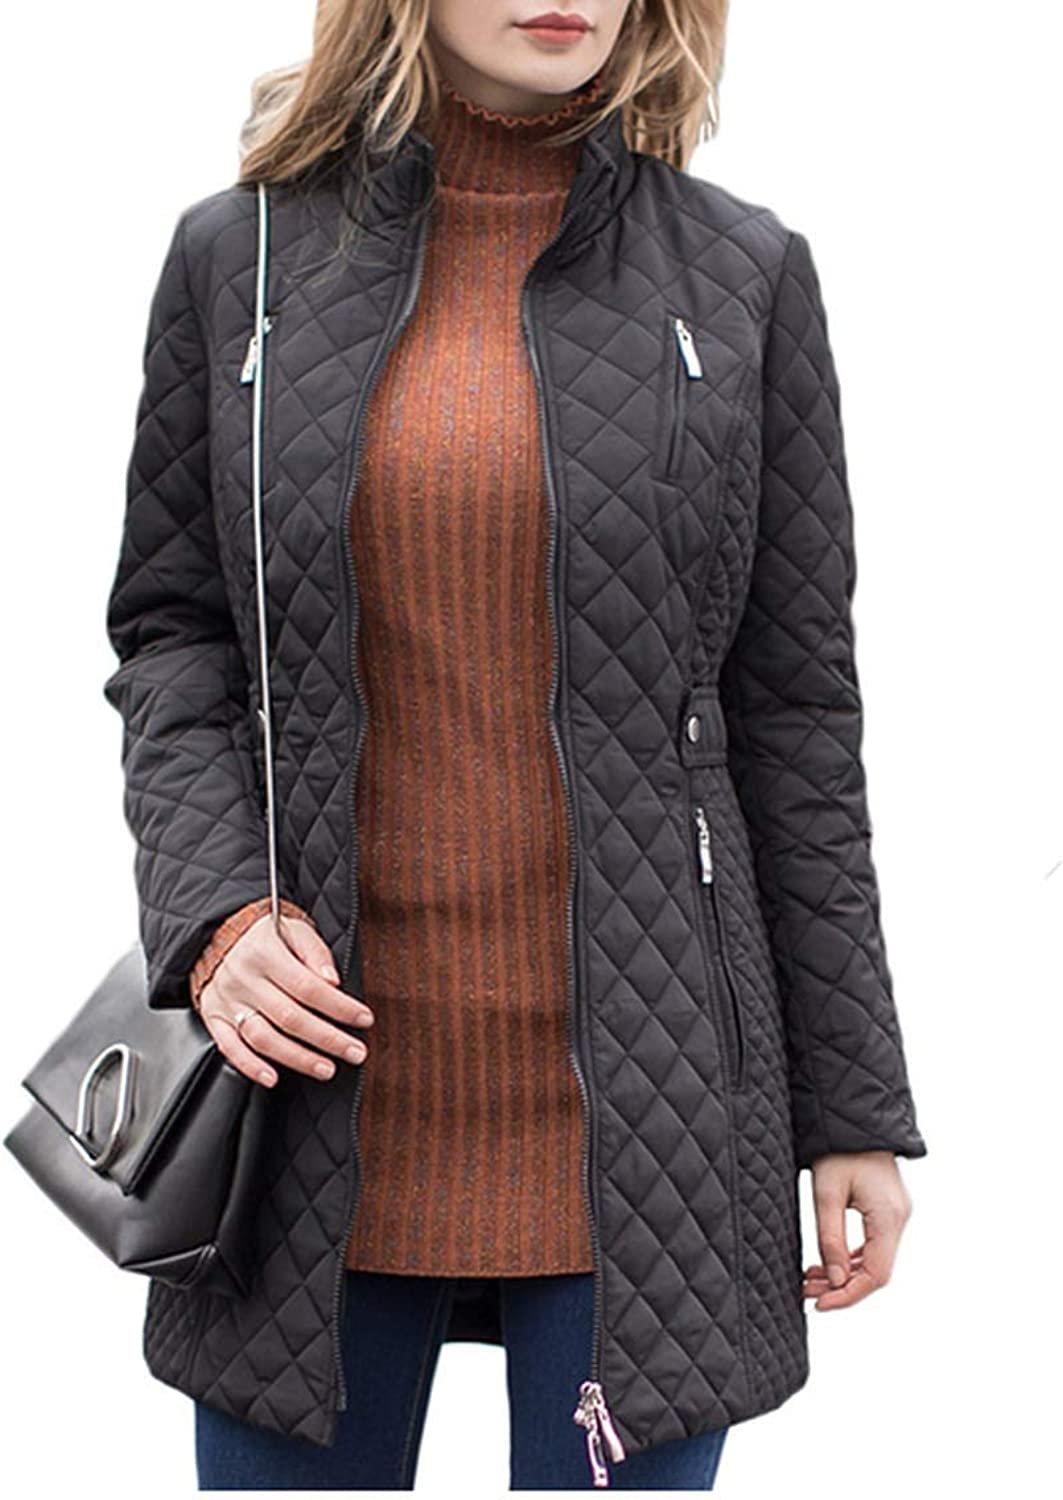 Sex Appealing Women Parkas New Jackets Lady Casual Padded Coat Long Quilted Female Oversize Outerwear